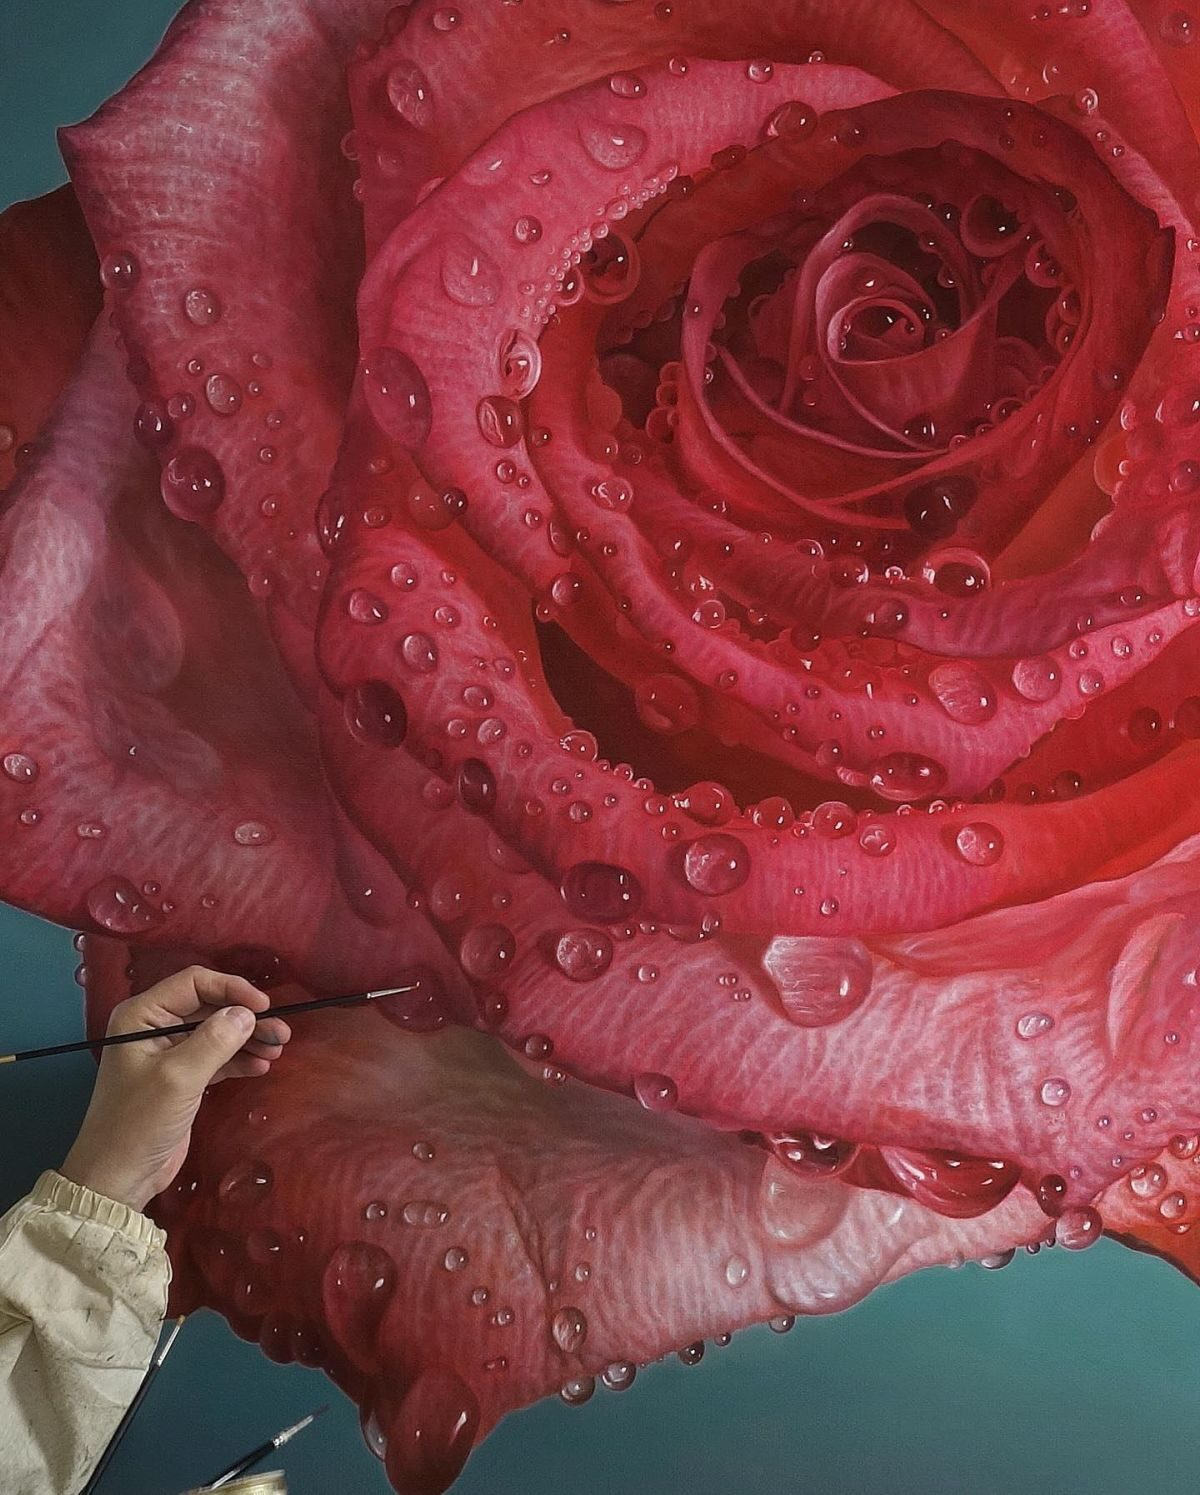 Hyper Realistic Oil Painting Rose by Gioacchino Passini